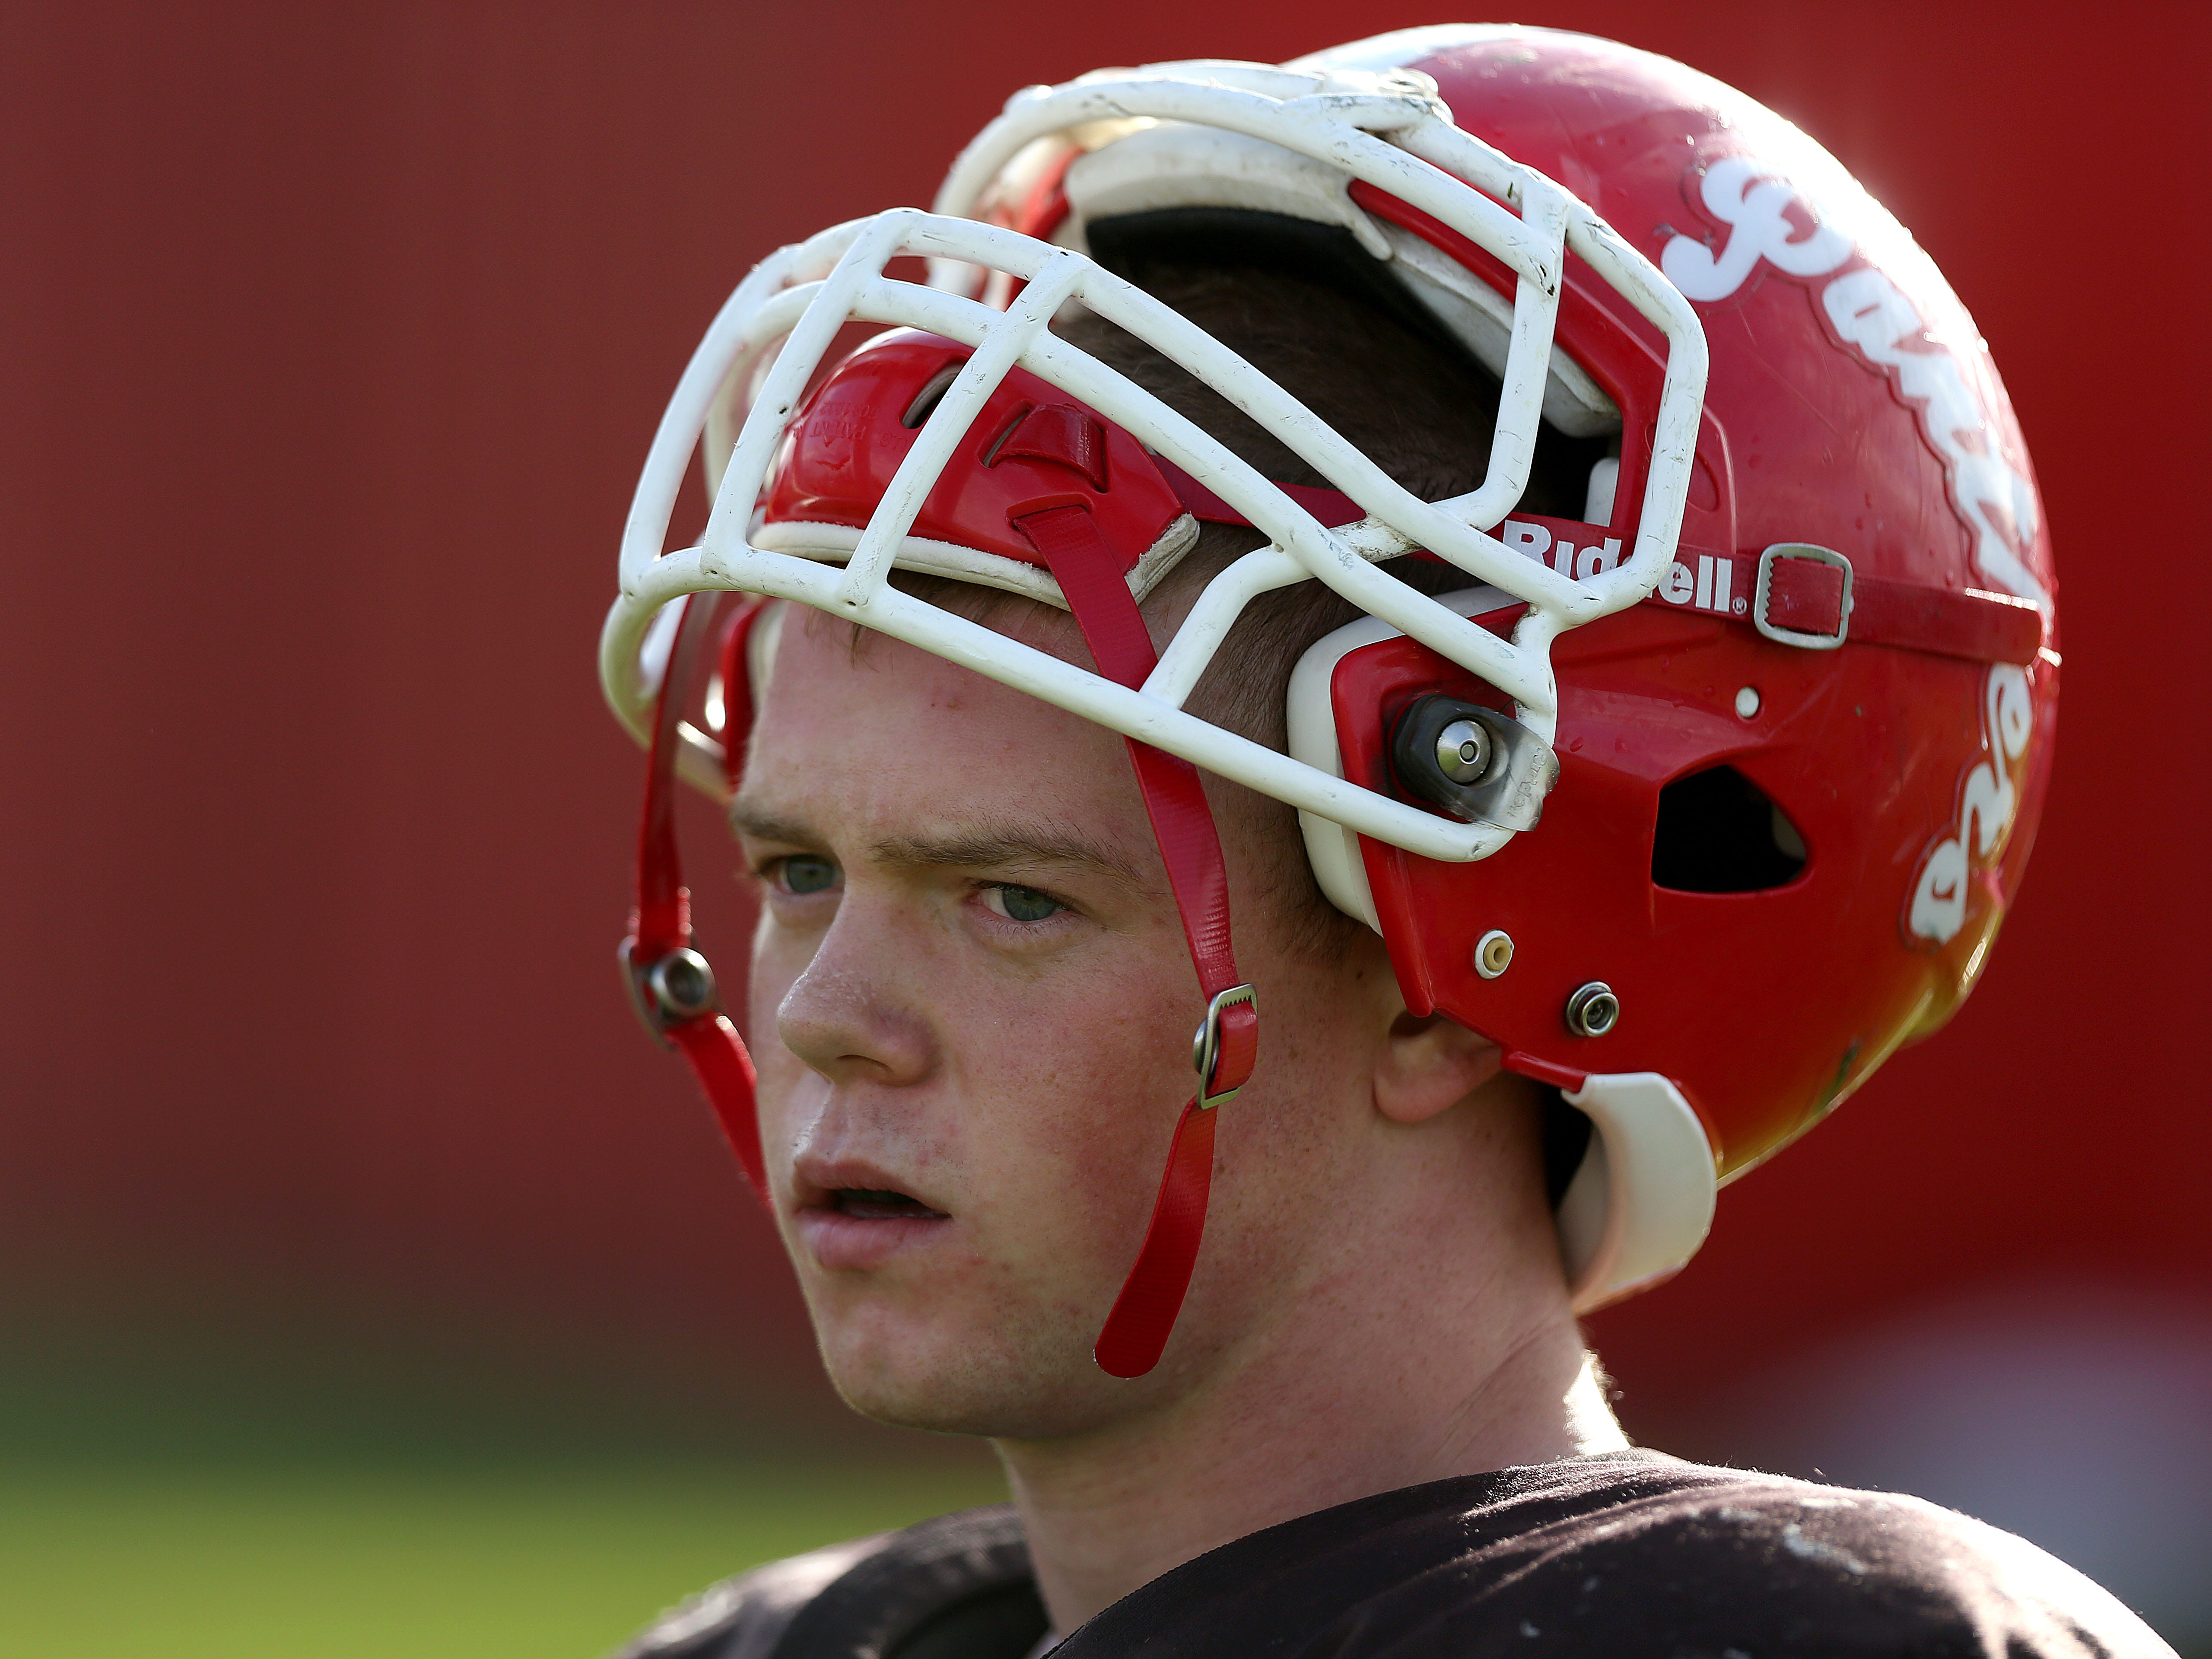 Central High School senior Wesley Riddell leads the state in rushing with 1,500 yards and 20 touchdowns through six games this season. Riddell practices with teammates on Wednesday, Oct. 15, 2014, in Independence.